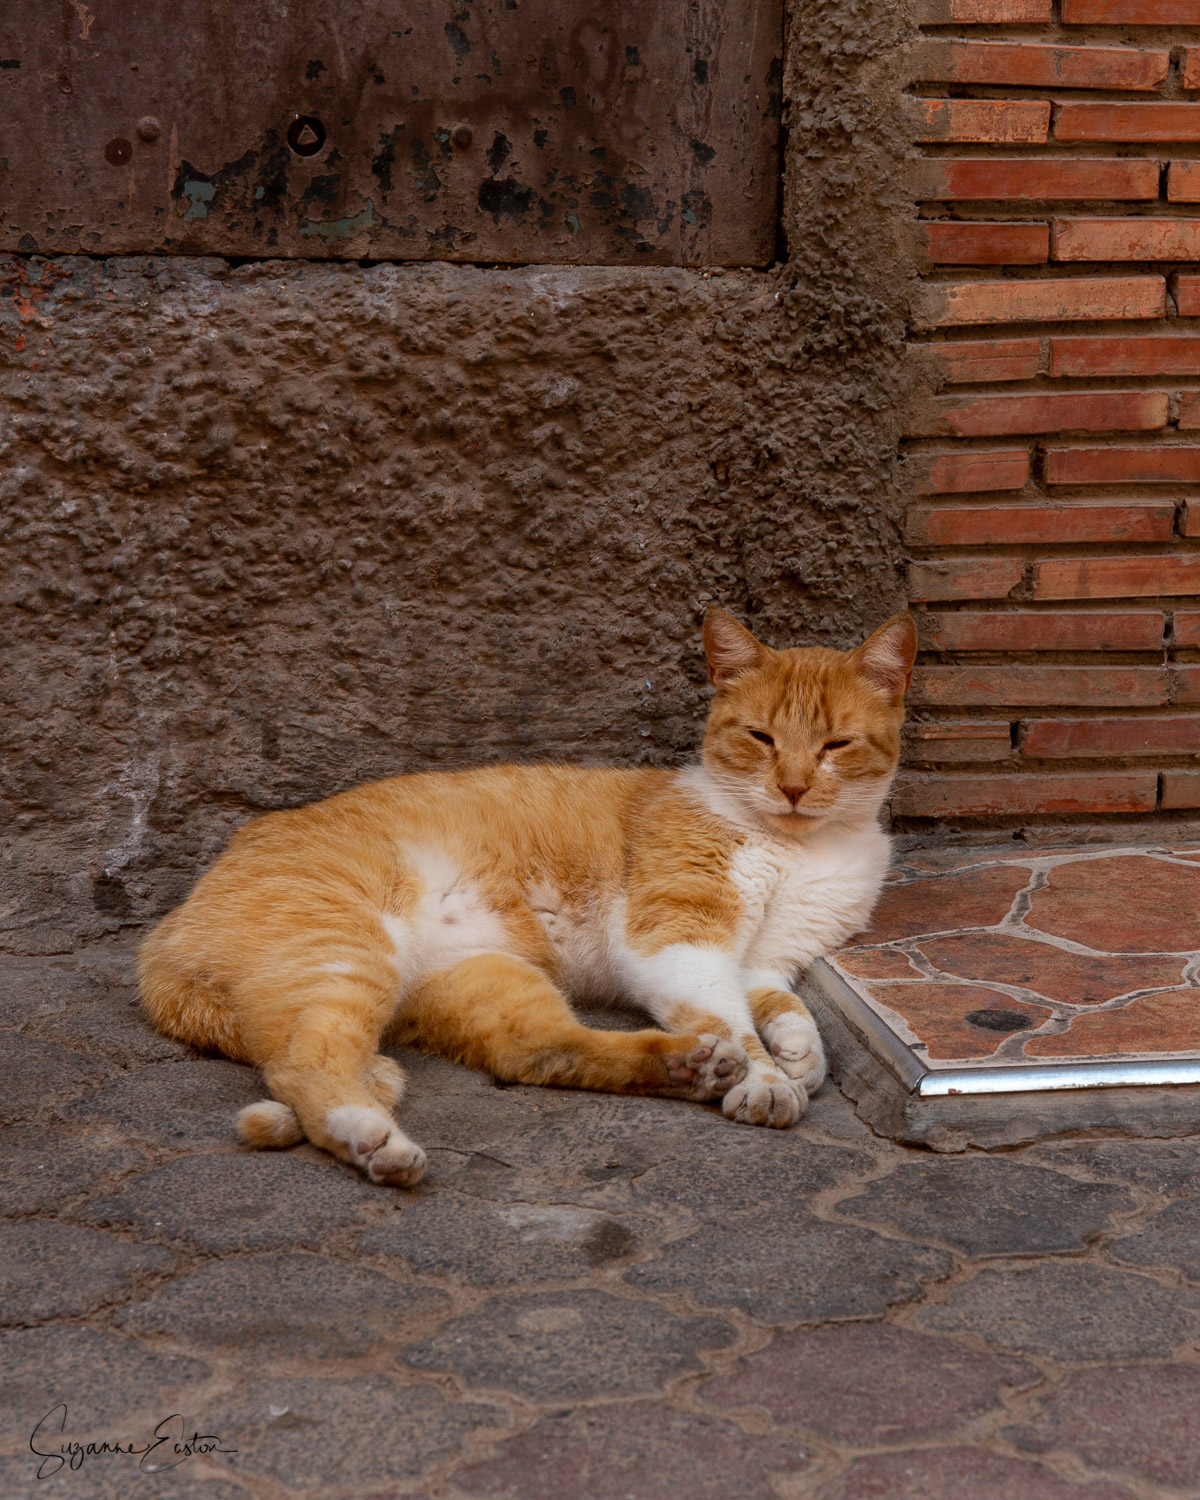 A fine wild cat in an alleyway of Marrakech